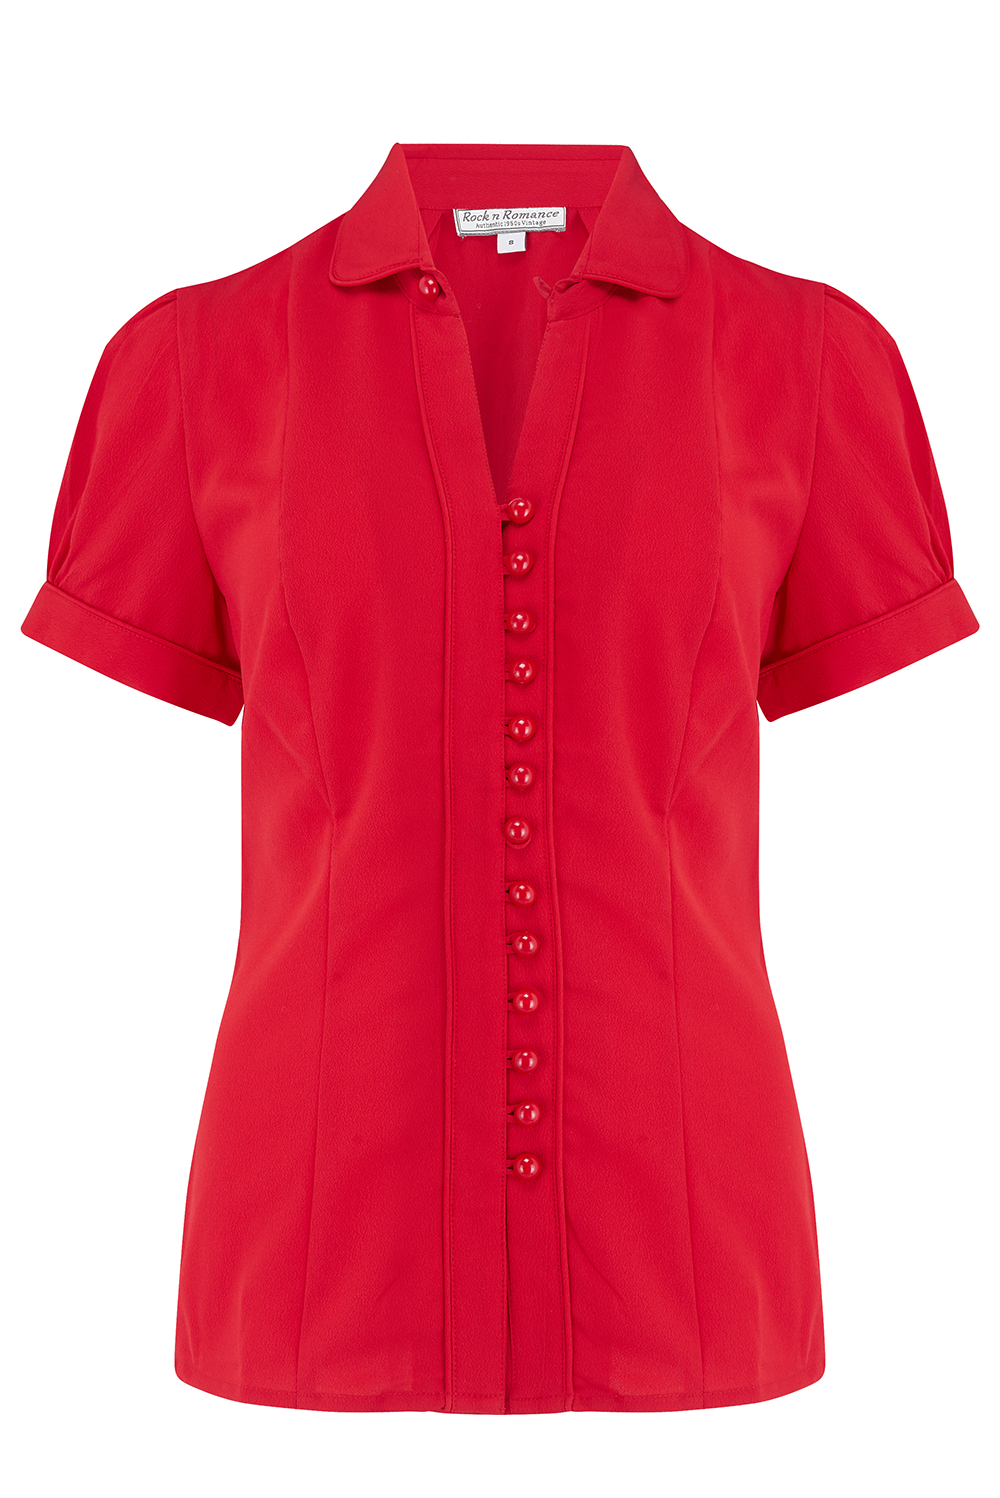 1940s Blouses and Tops Margot Blouse in Solid Red Perfect 1950s Style £35.00 AT vintagedancer.com